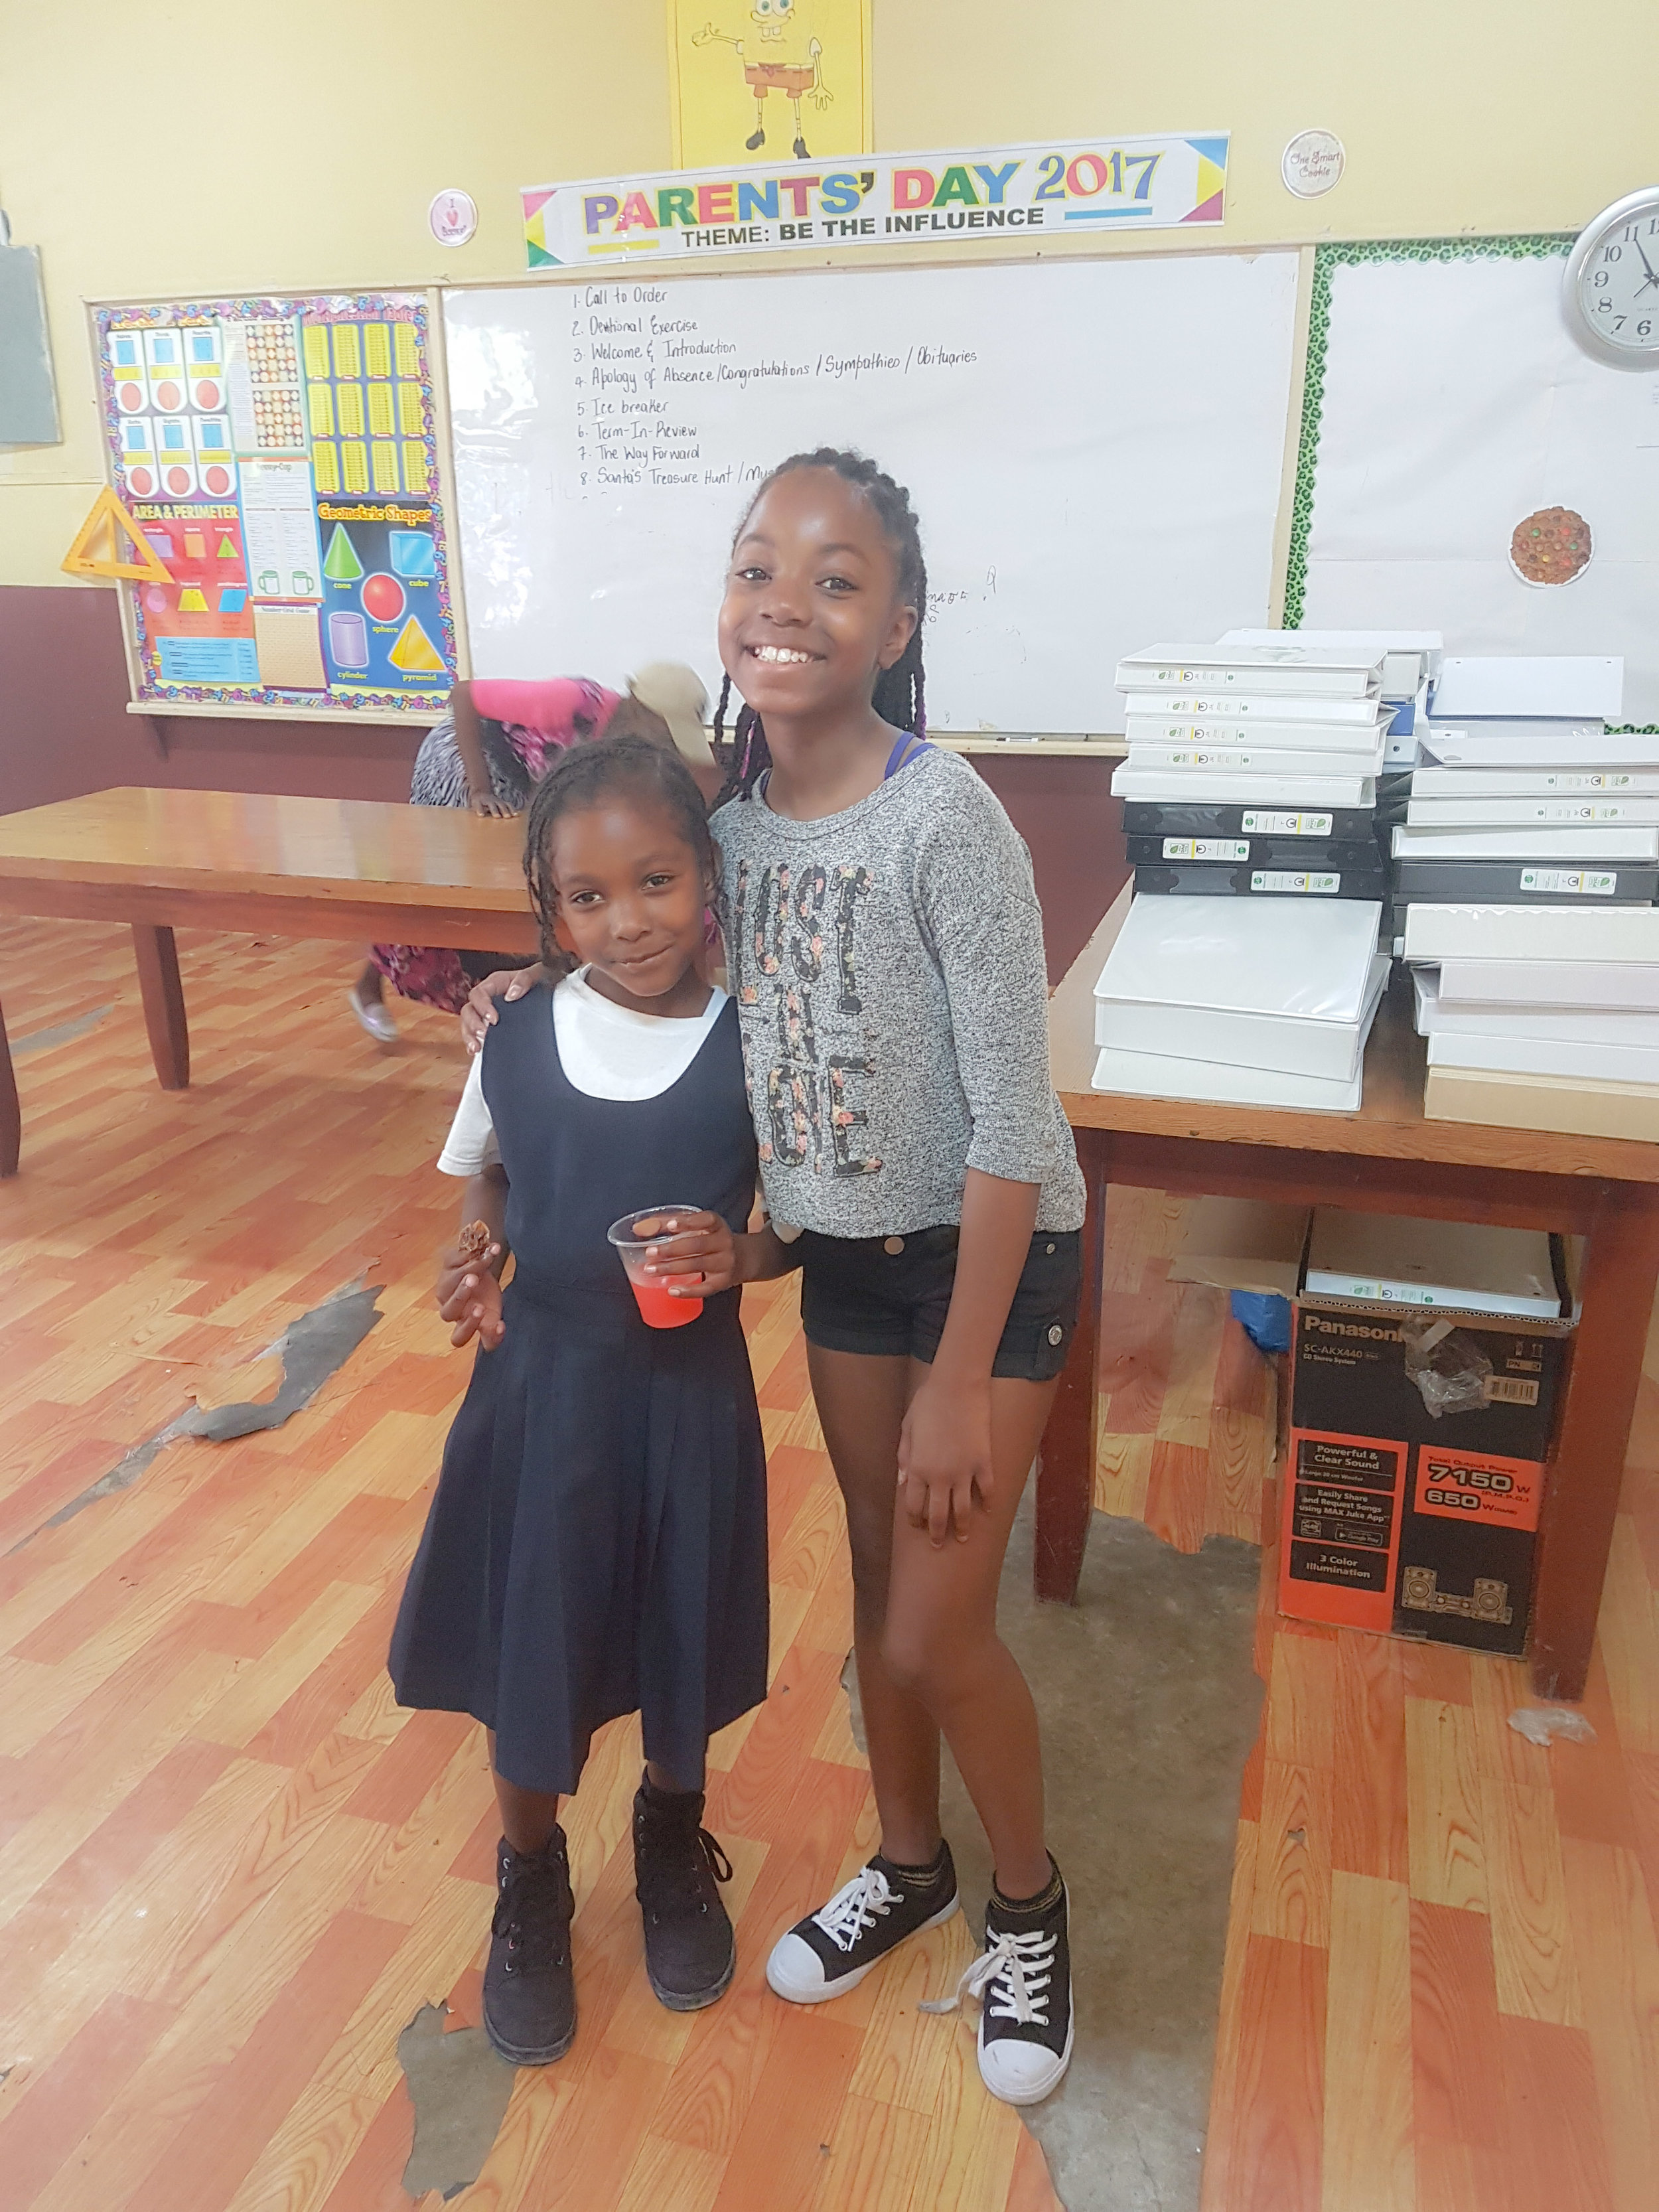 My niece making friends. I'm glad that she was able to see how other children experience school.